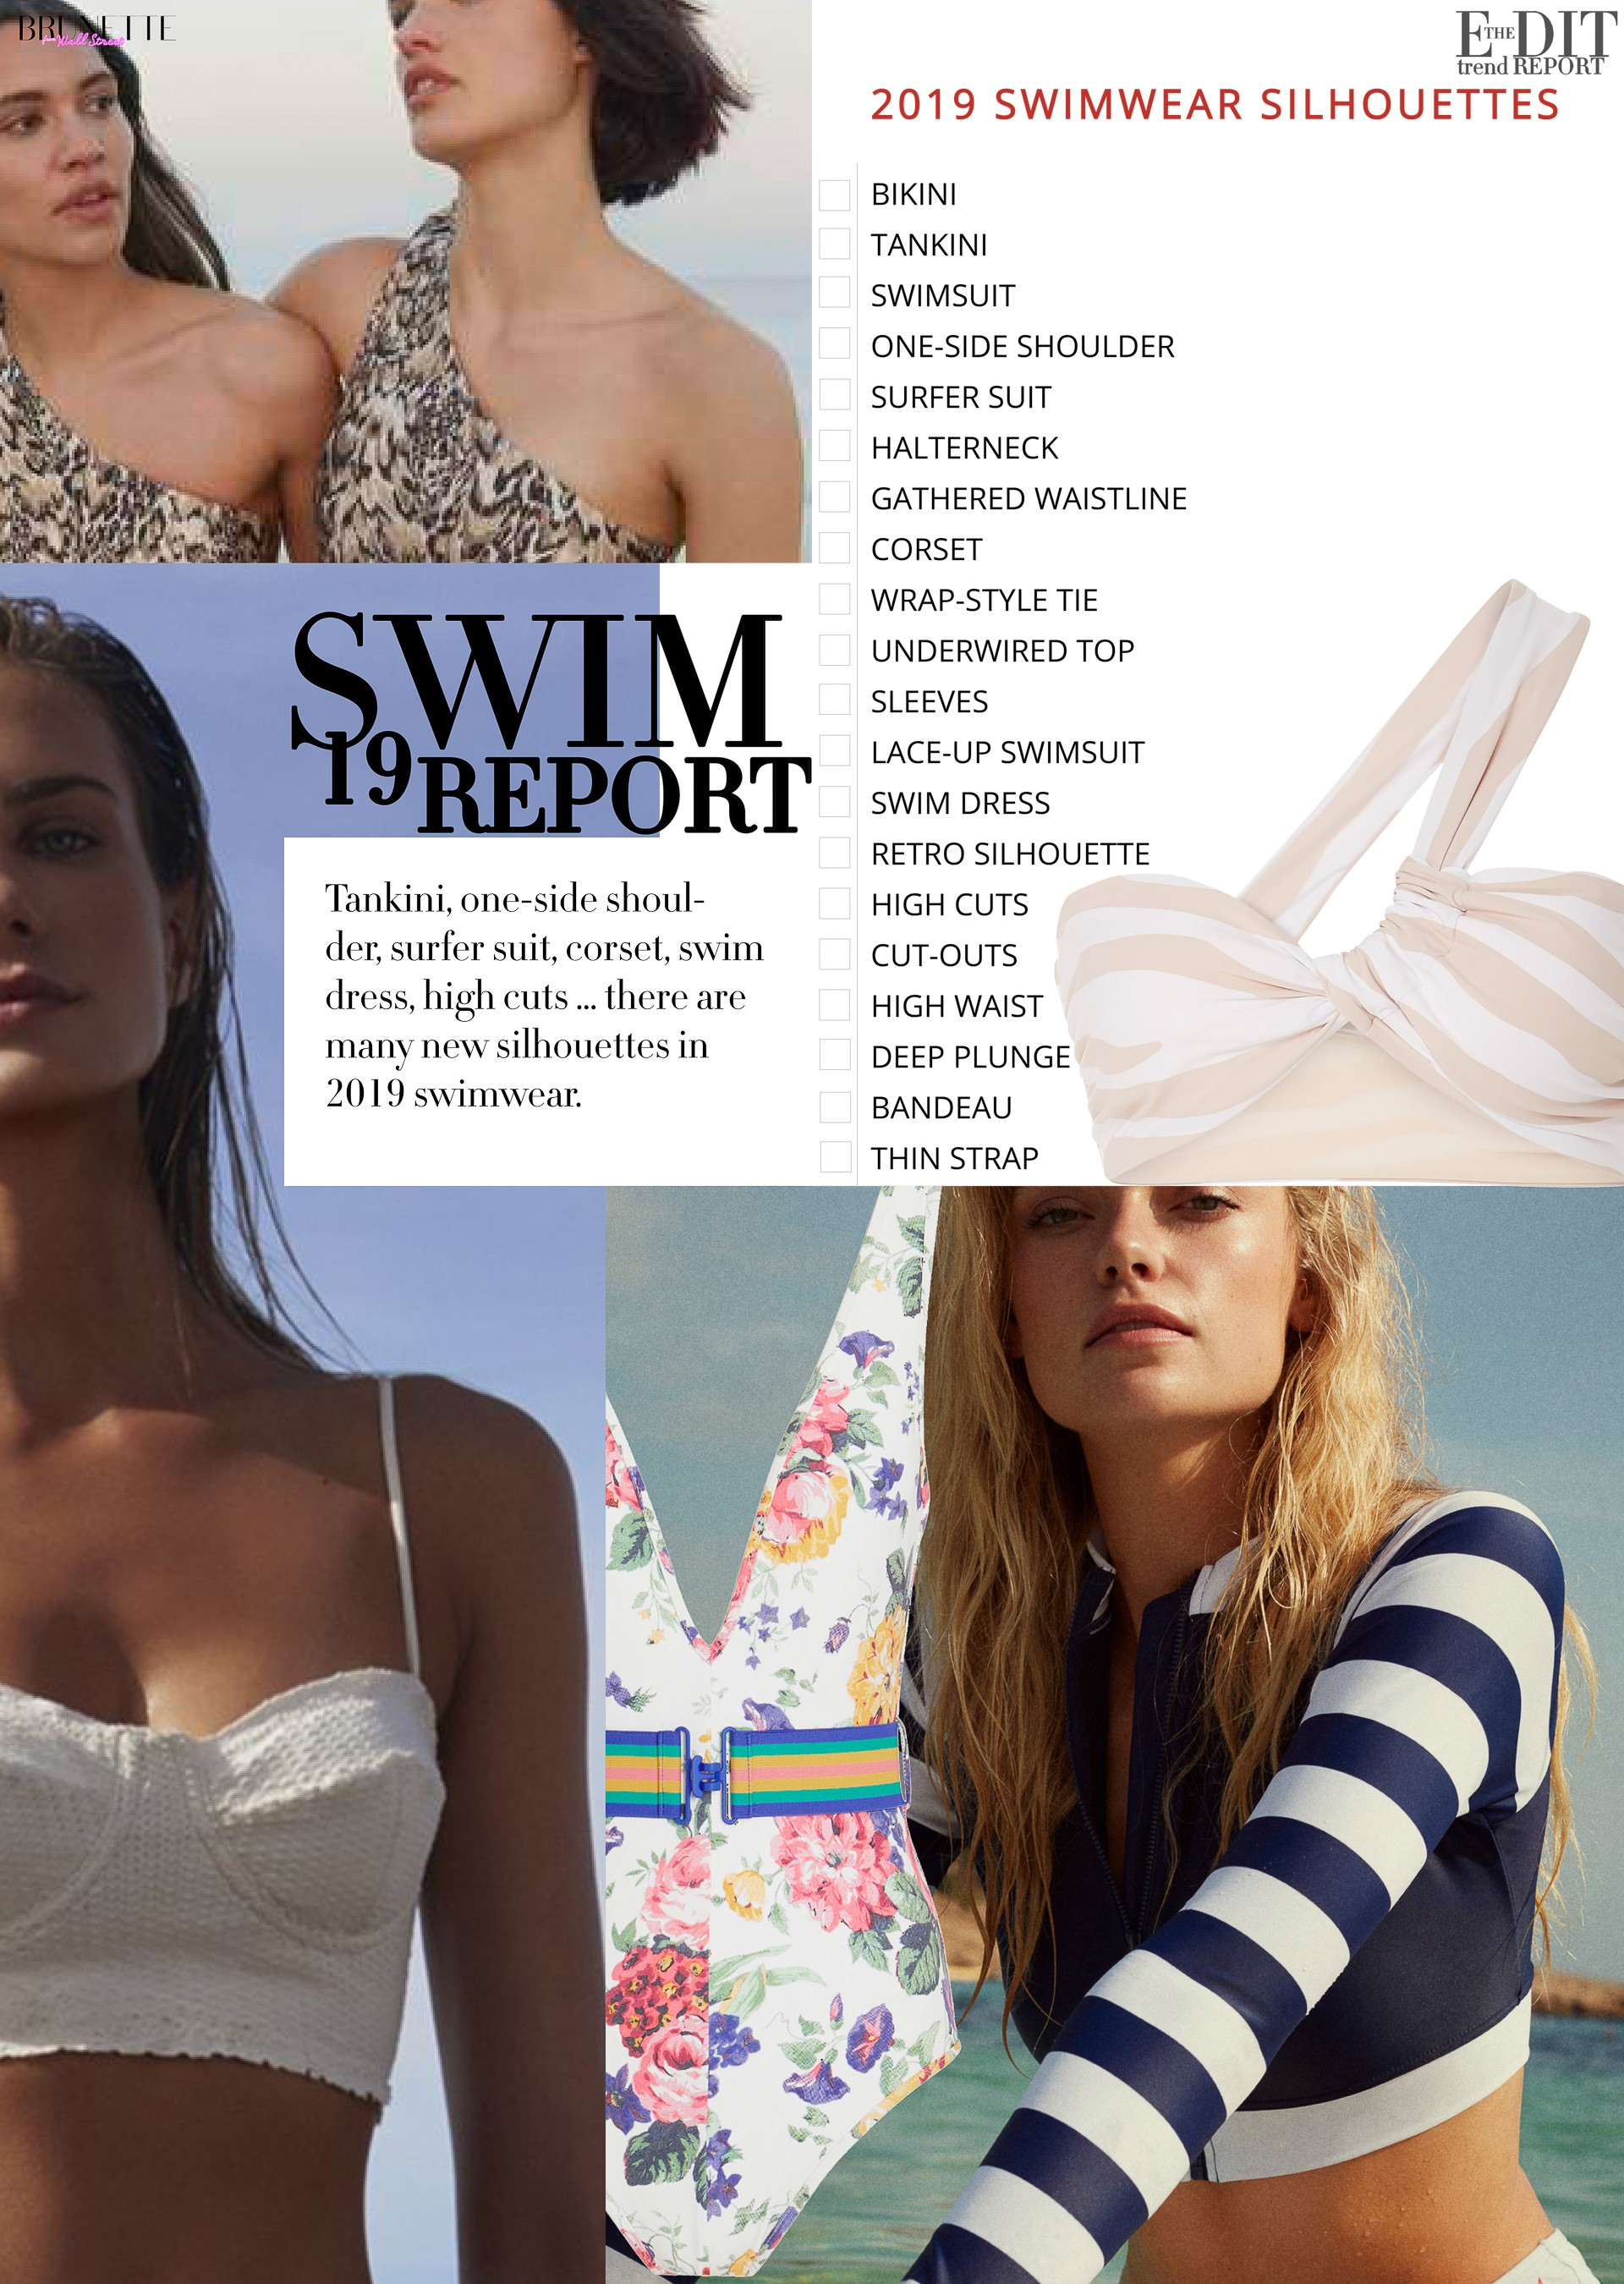 a3392a804d ALL SWIMWEAR TRENDS OF SUMMER 2019 - PRETTY AND HIDEOUS | Brunette ...